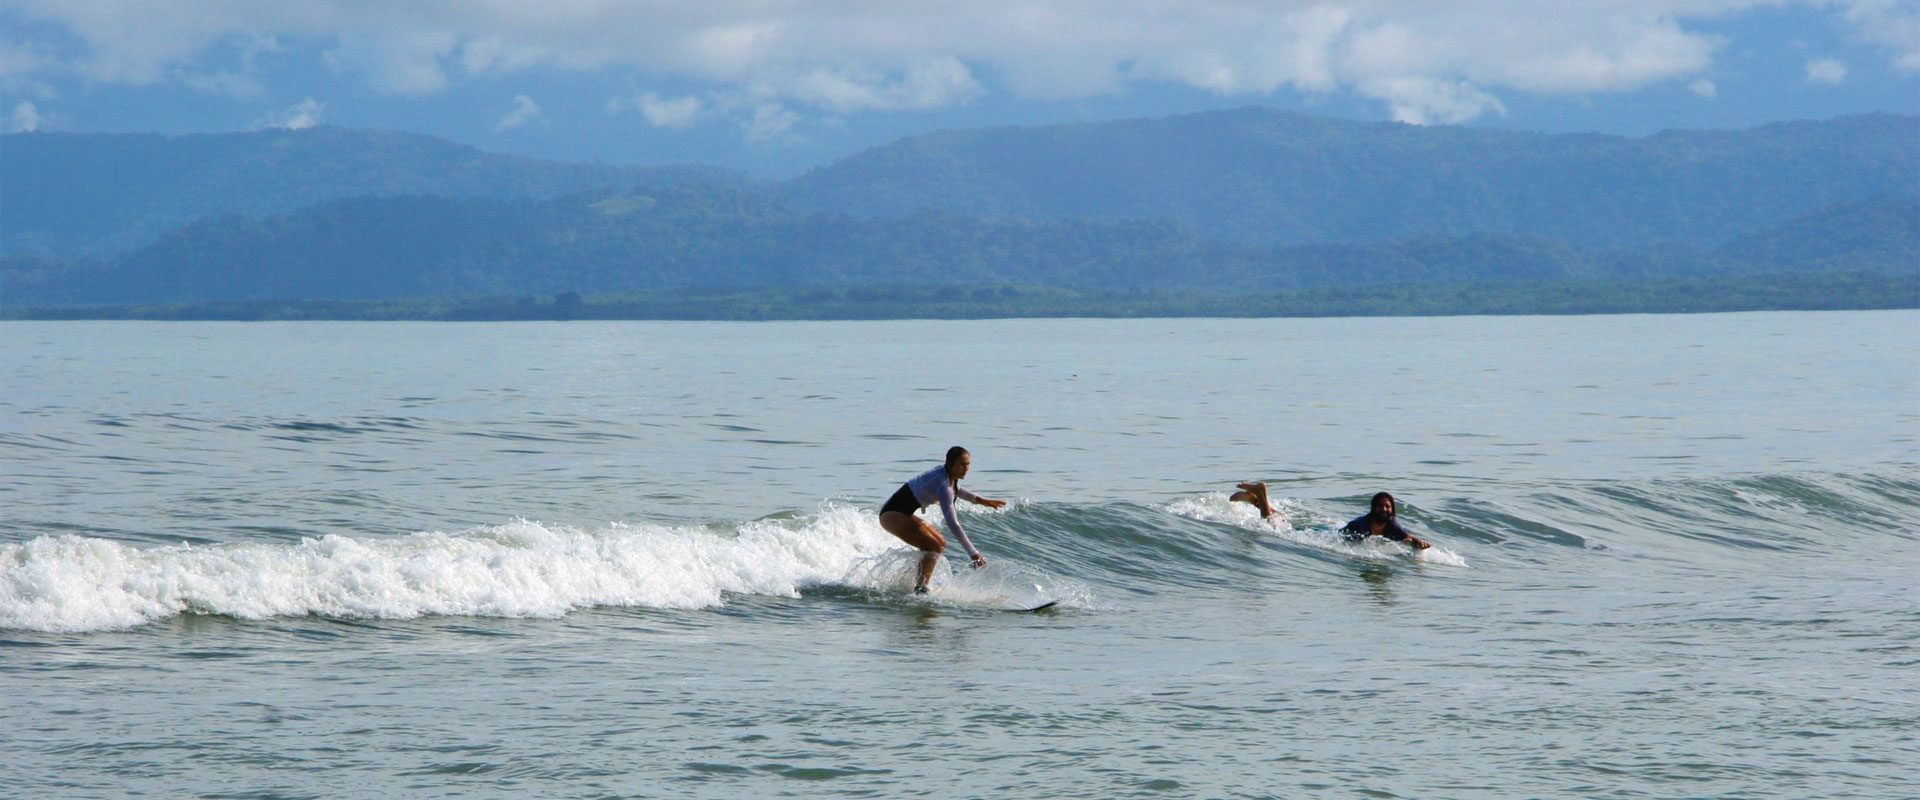 apprendre-le-surf-costa-rica-surf-expedition